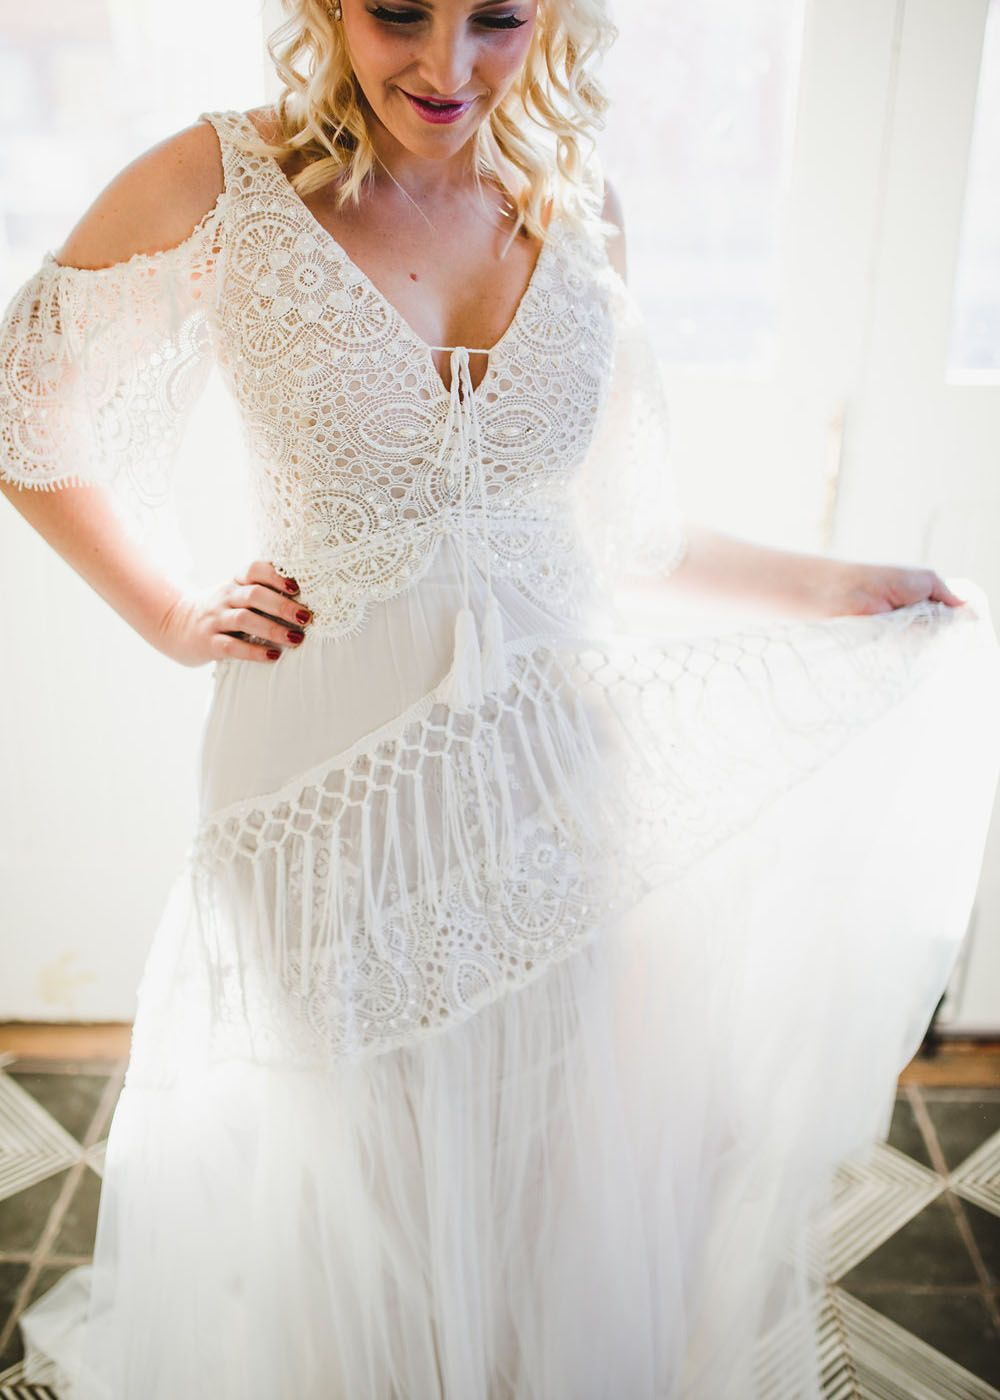 A Be Bohemian Curve By Rish Best Wedding Dresses Boho Wedding Dress Bohemian Curvy Wedding Dress